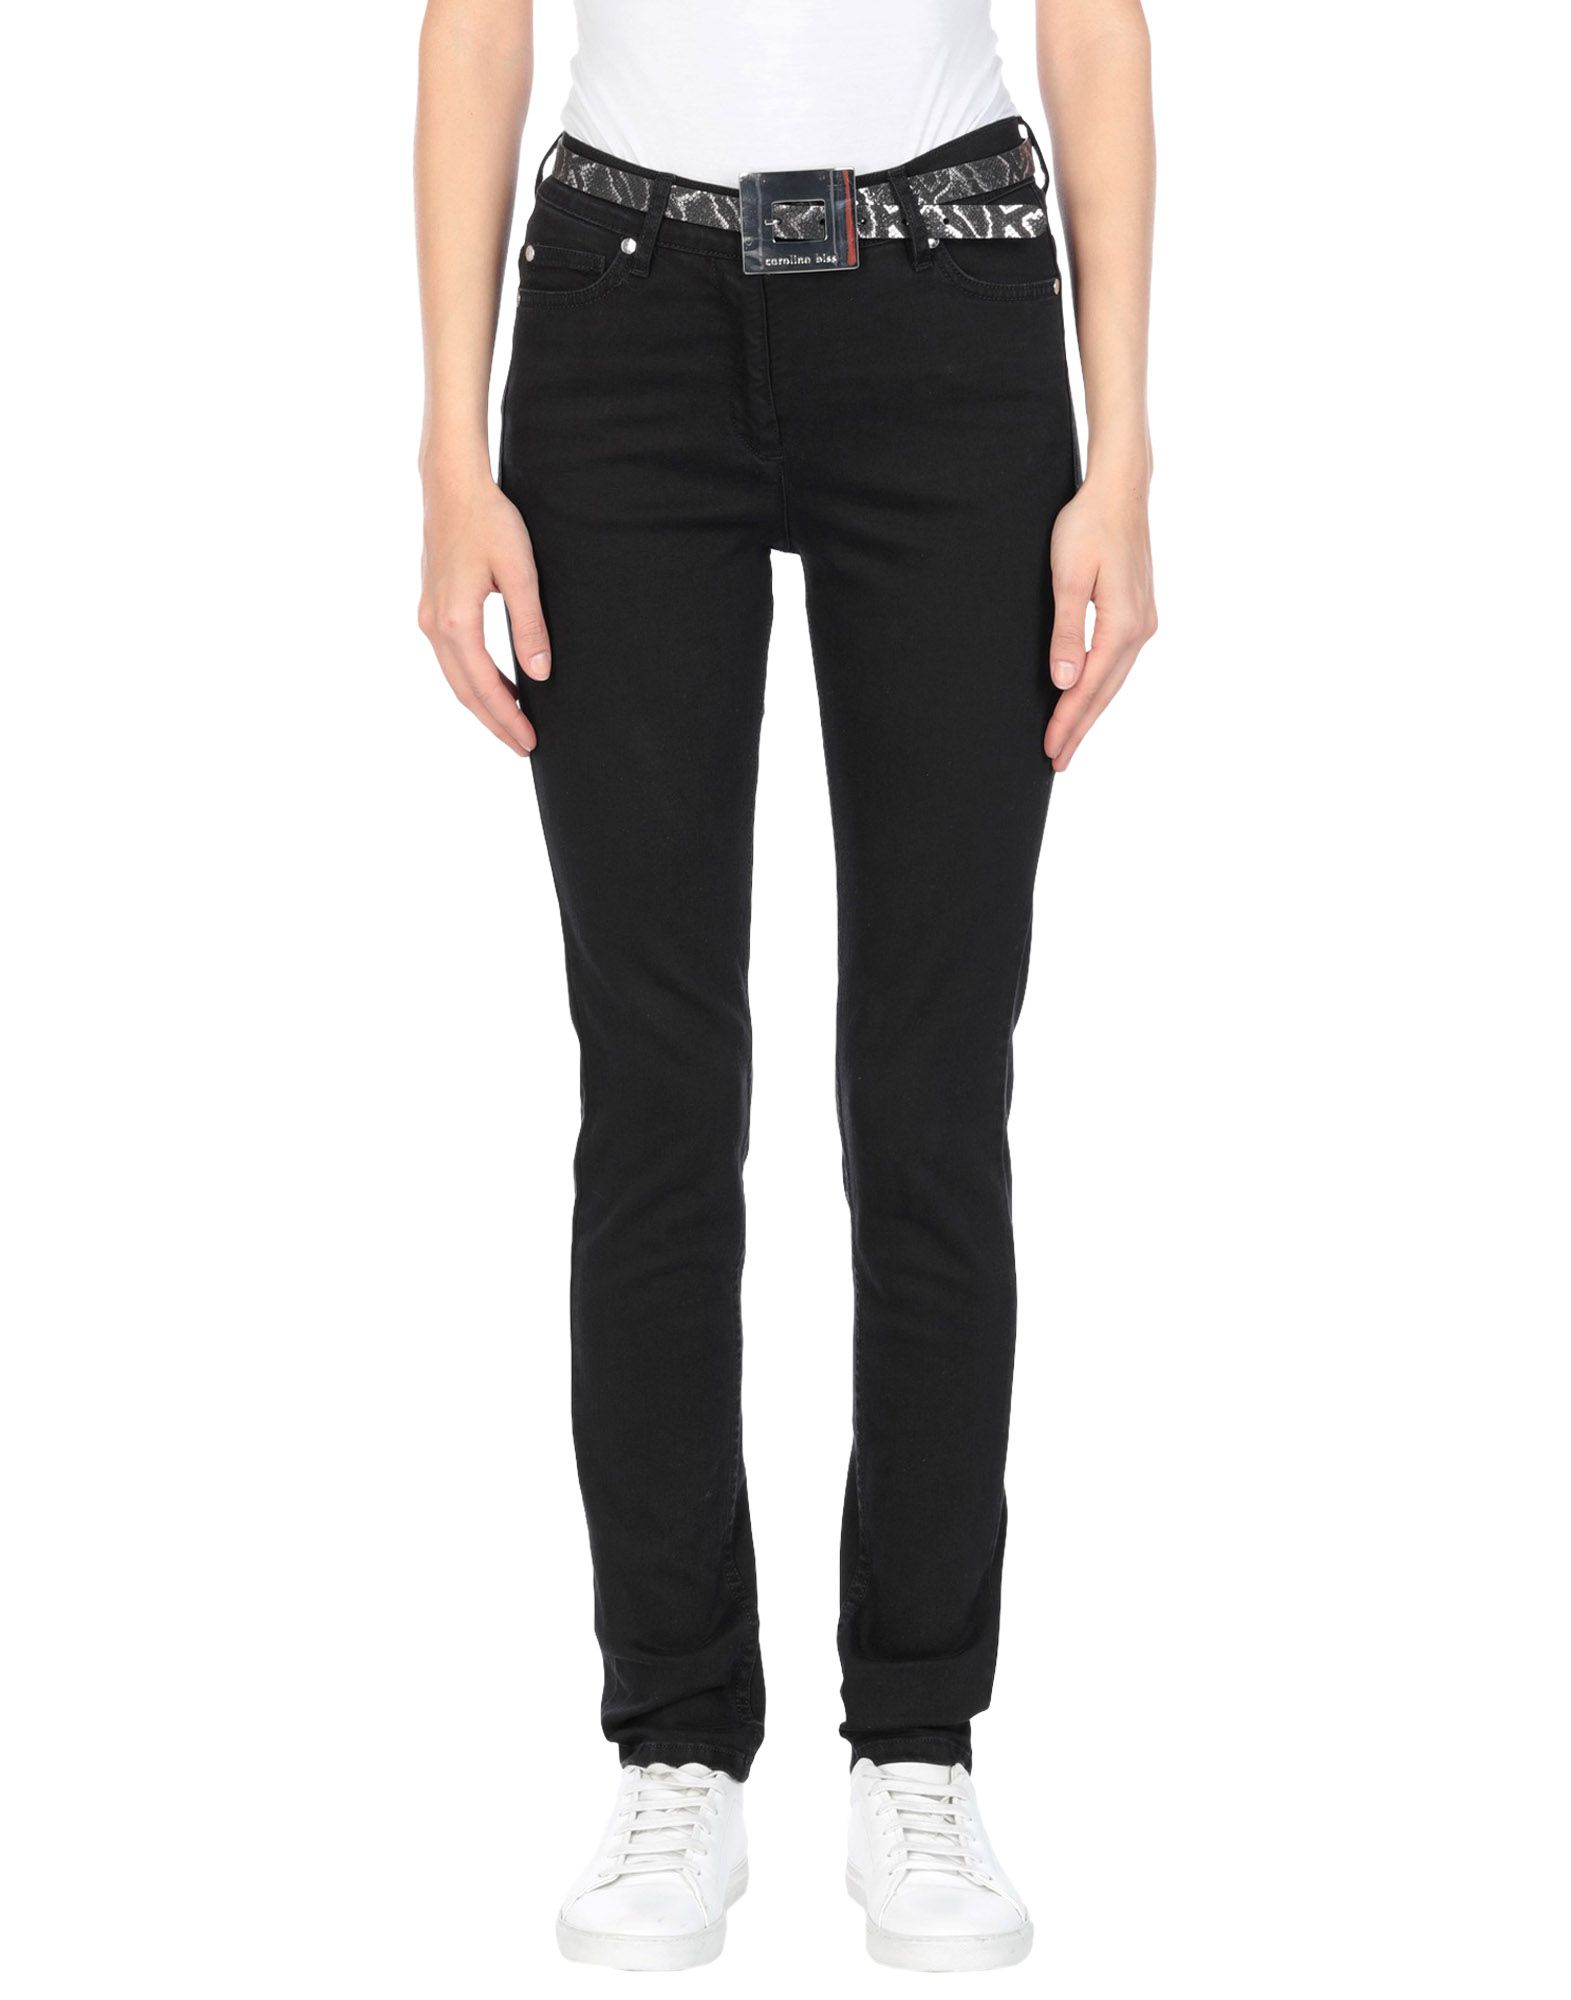 CAROLINE BISS Denim pants - Item 42741958